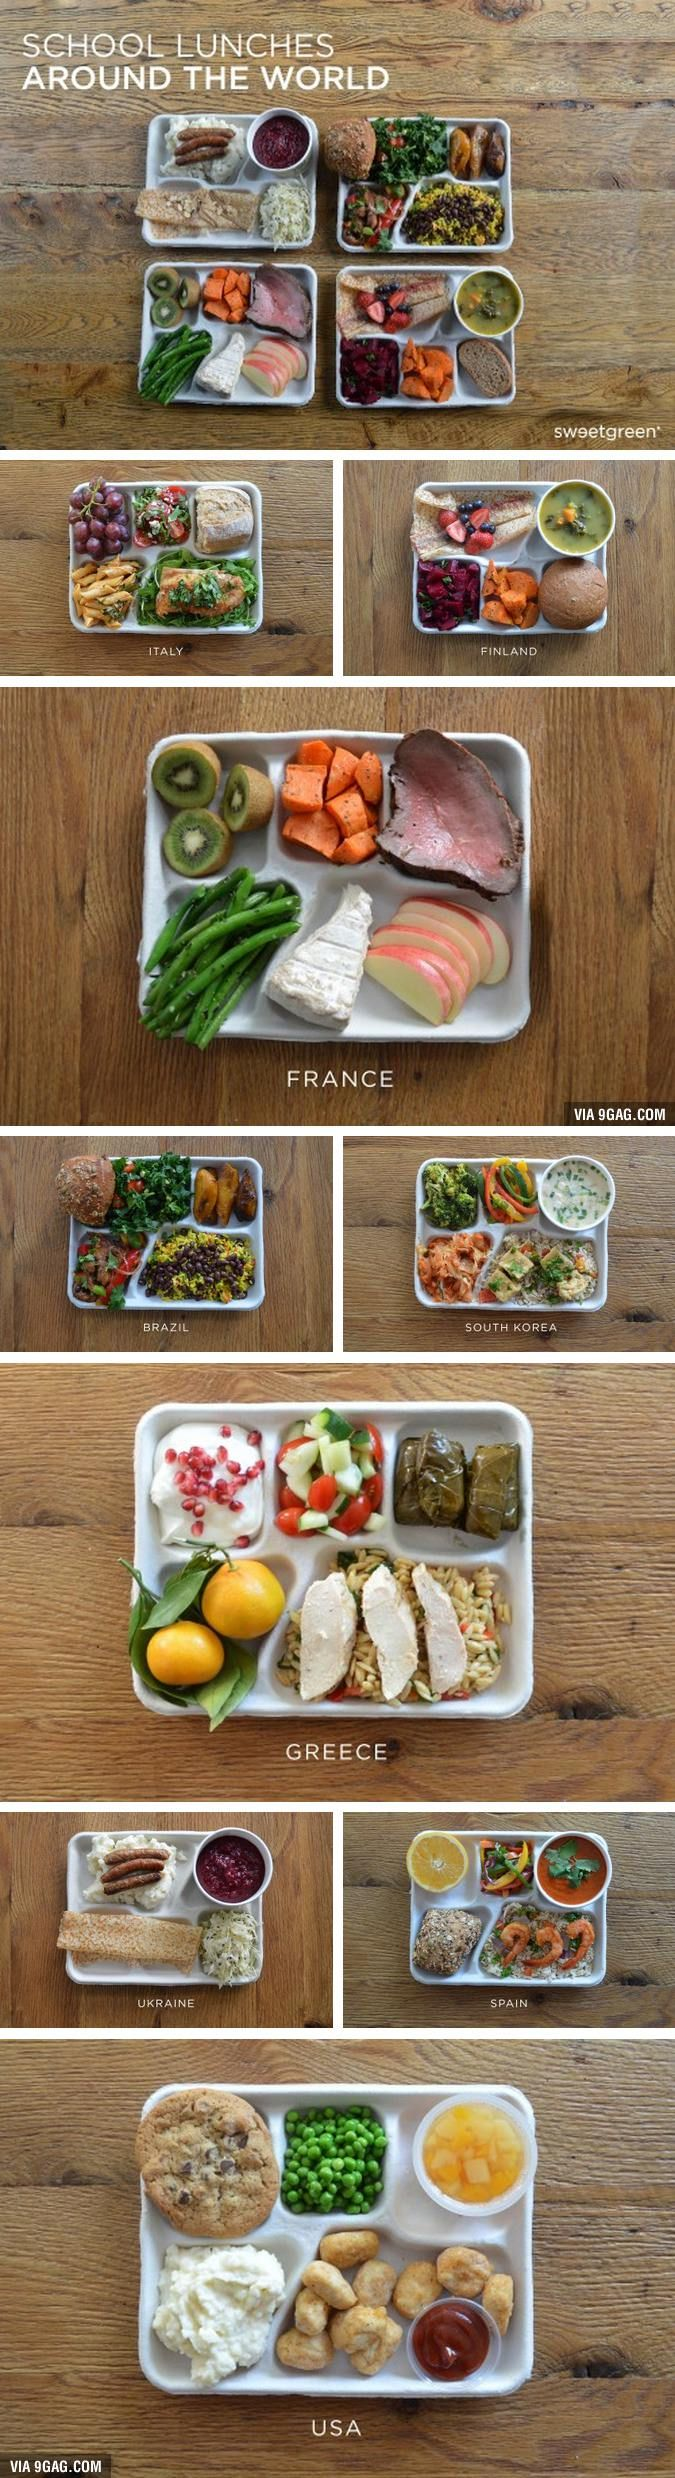 School Lunches Around The World.... SO INTERESTING! I love learning about different cultures!